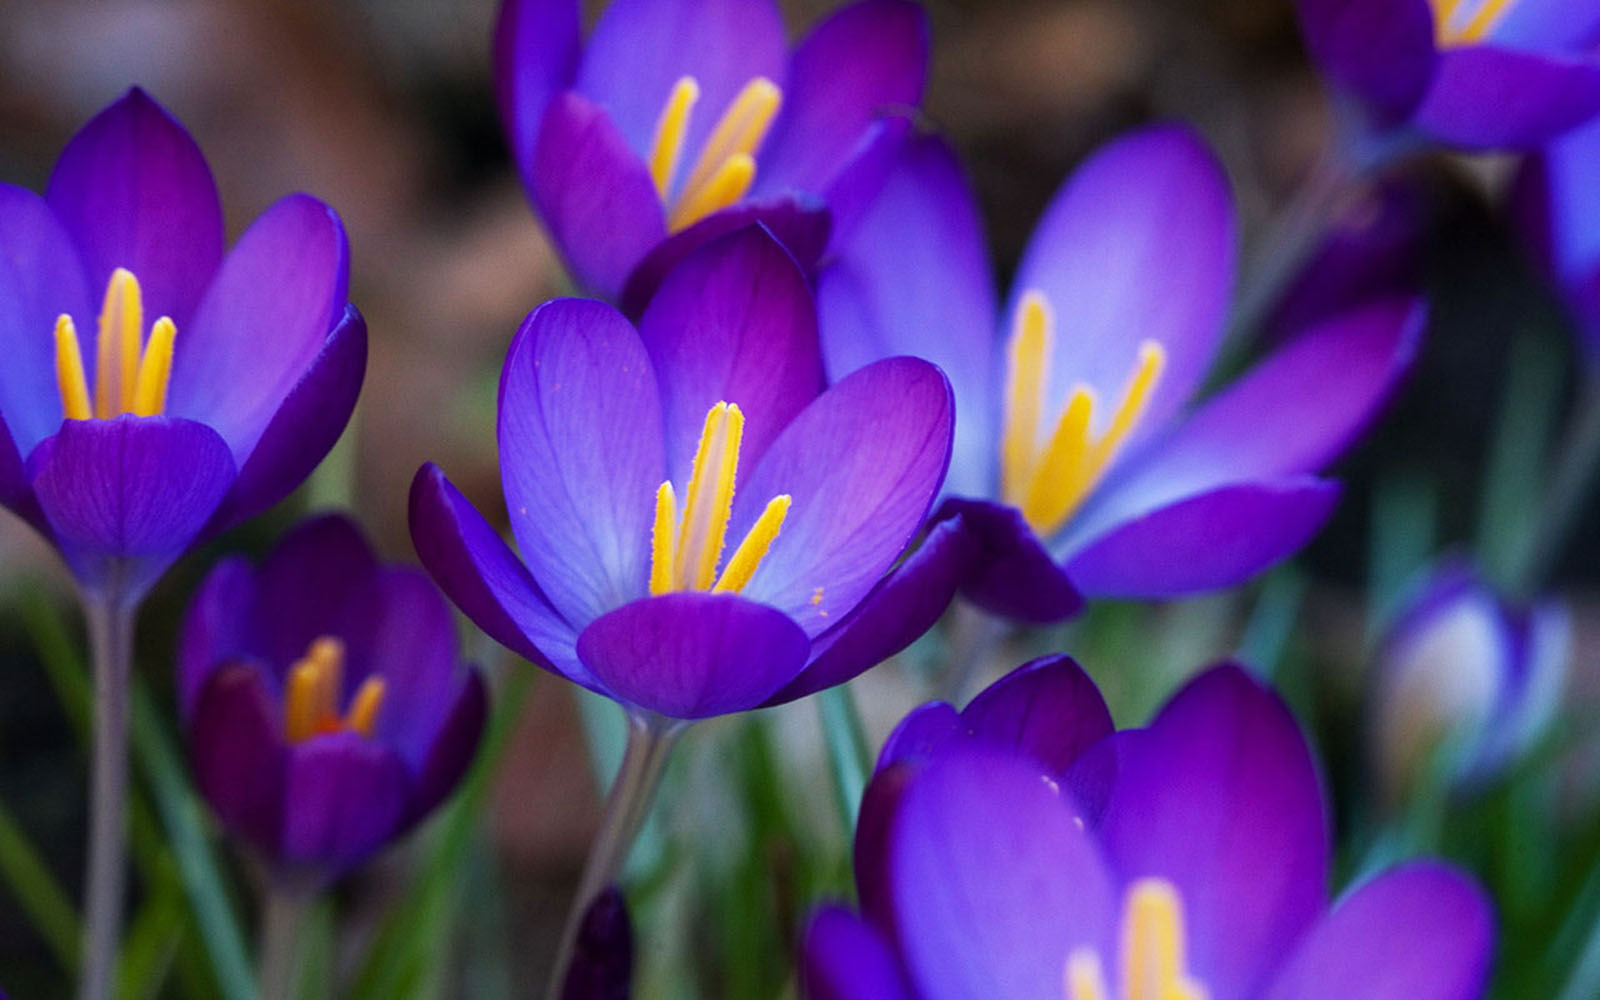 Crocus, a type of spring blooming bulb